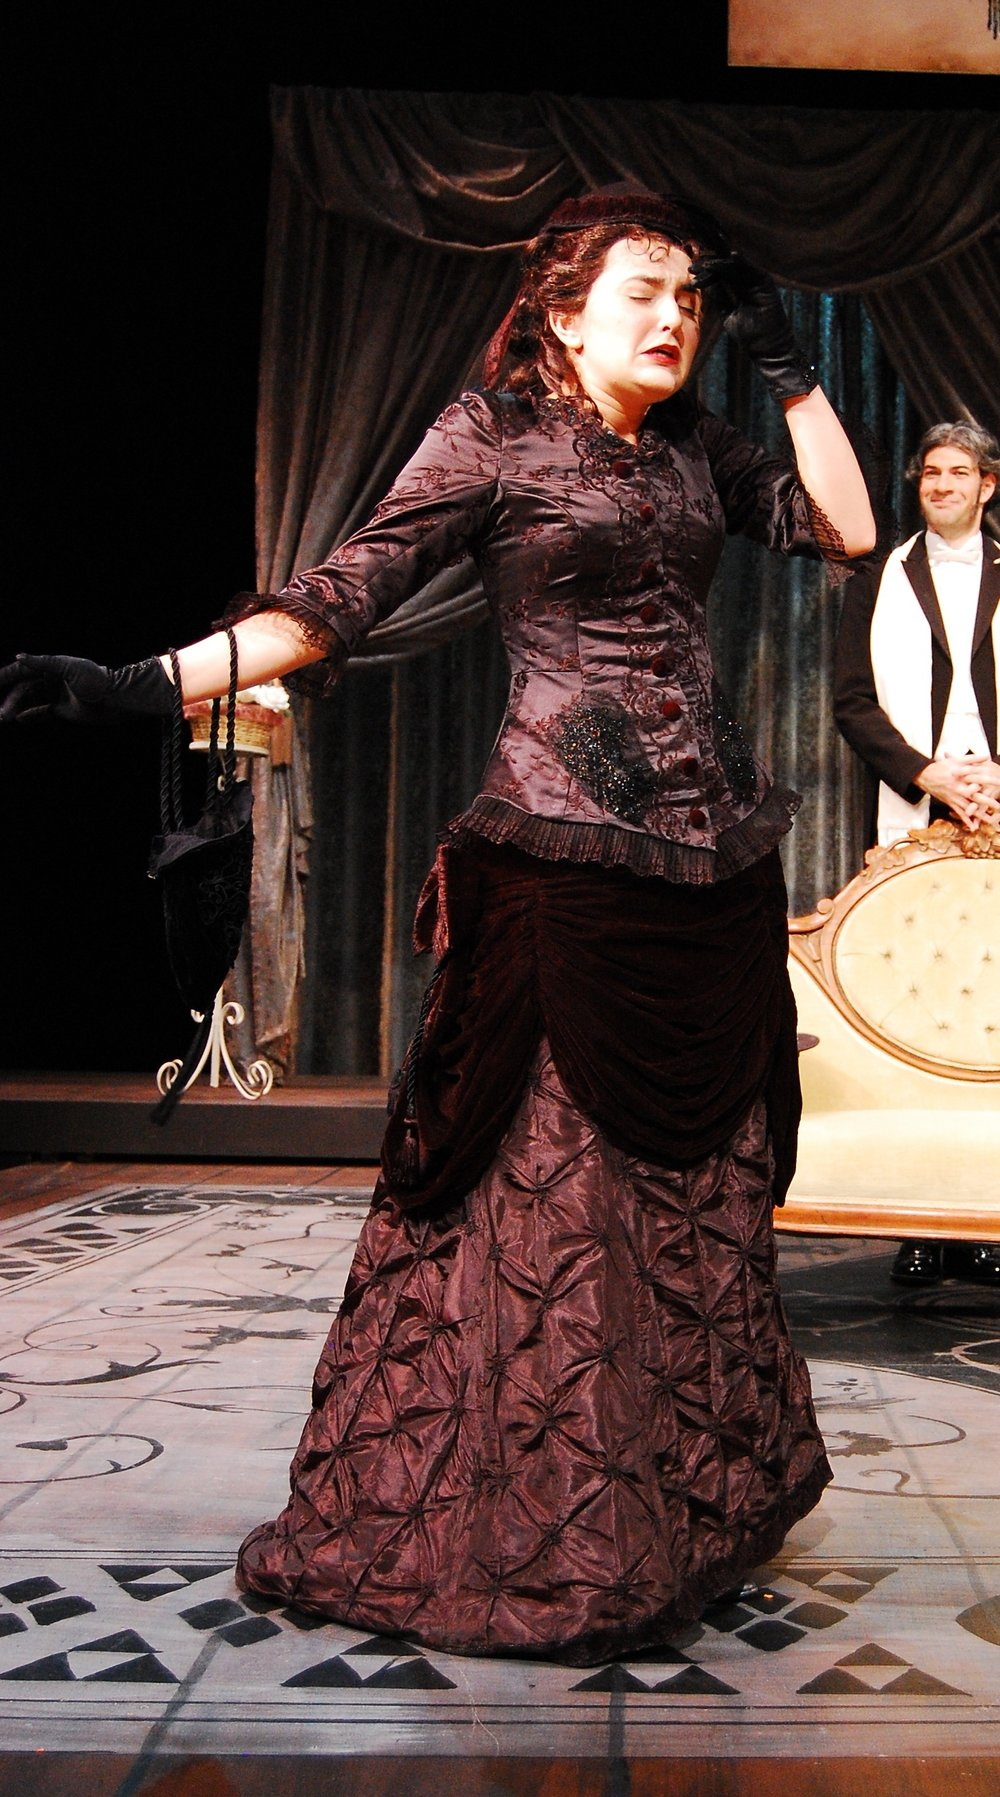 Engaged, 2010  San Francisco State University  Director: Bill Peters  Costume Designer: Sarah Correa  Photographer: Clyde Sheets  Blouse and Skirt constructed from scratch